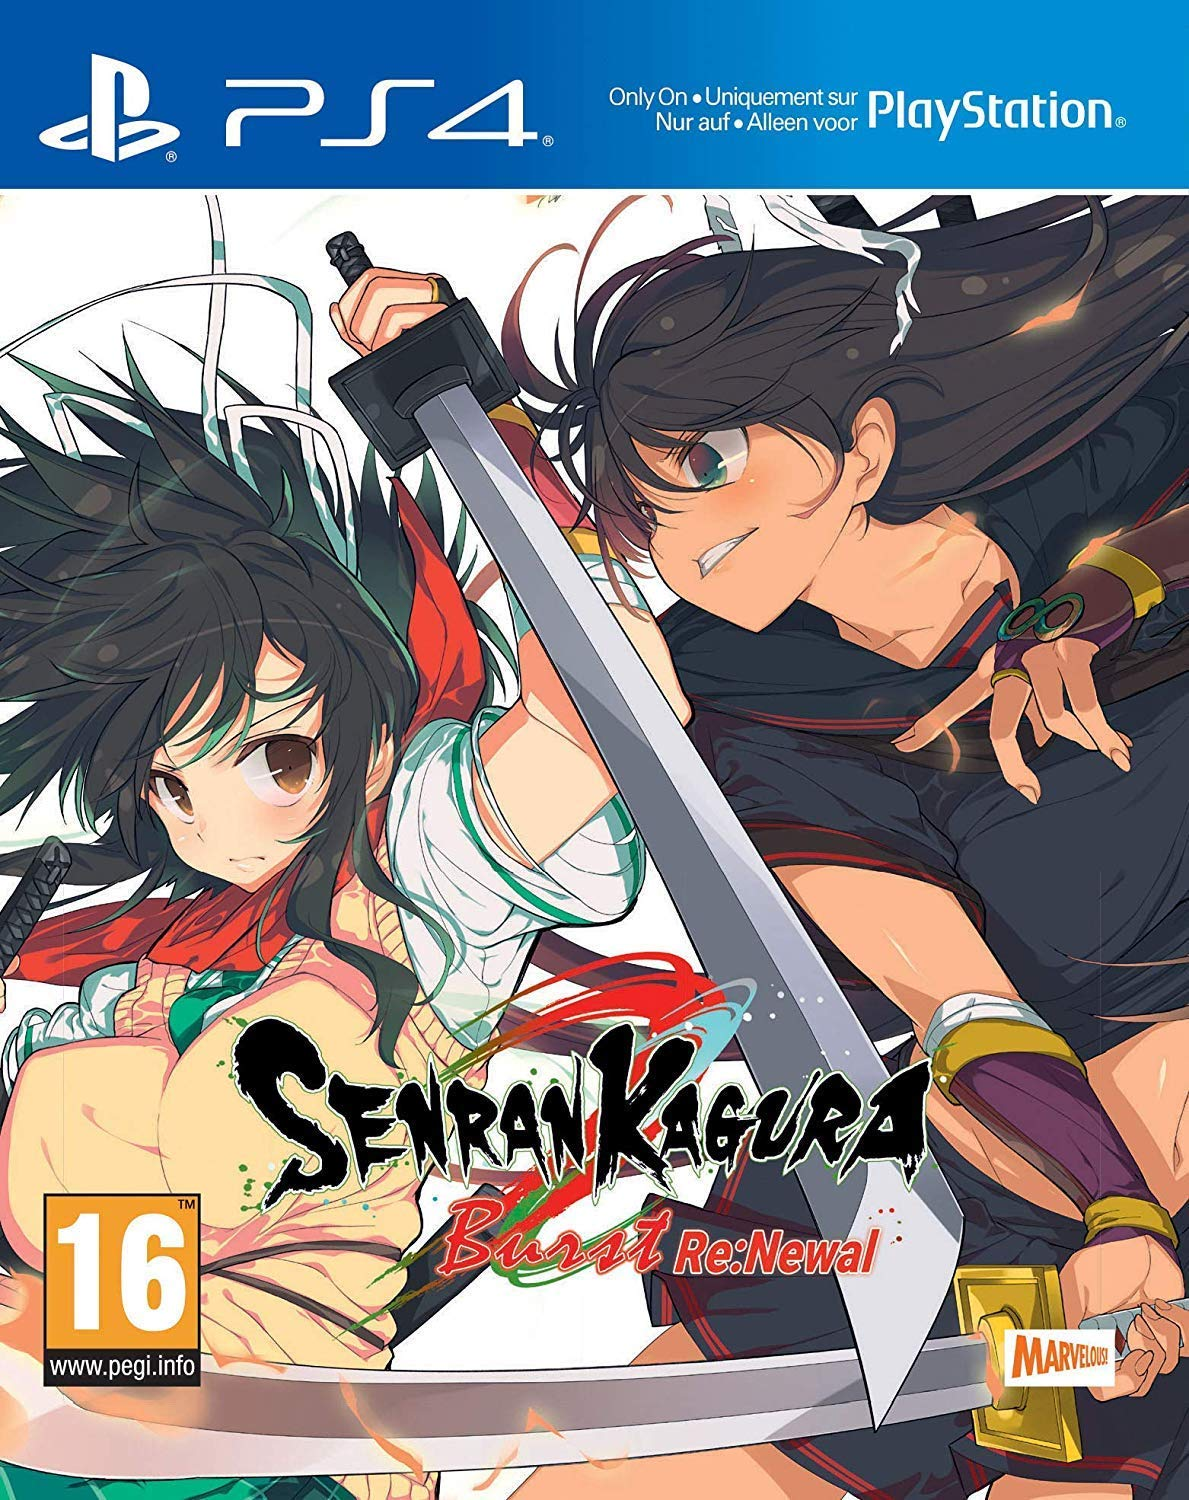 SENRAN KAGURA Burst Re:Newal PS4